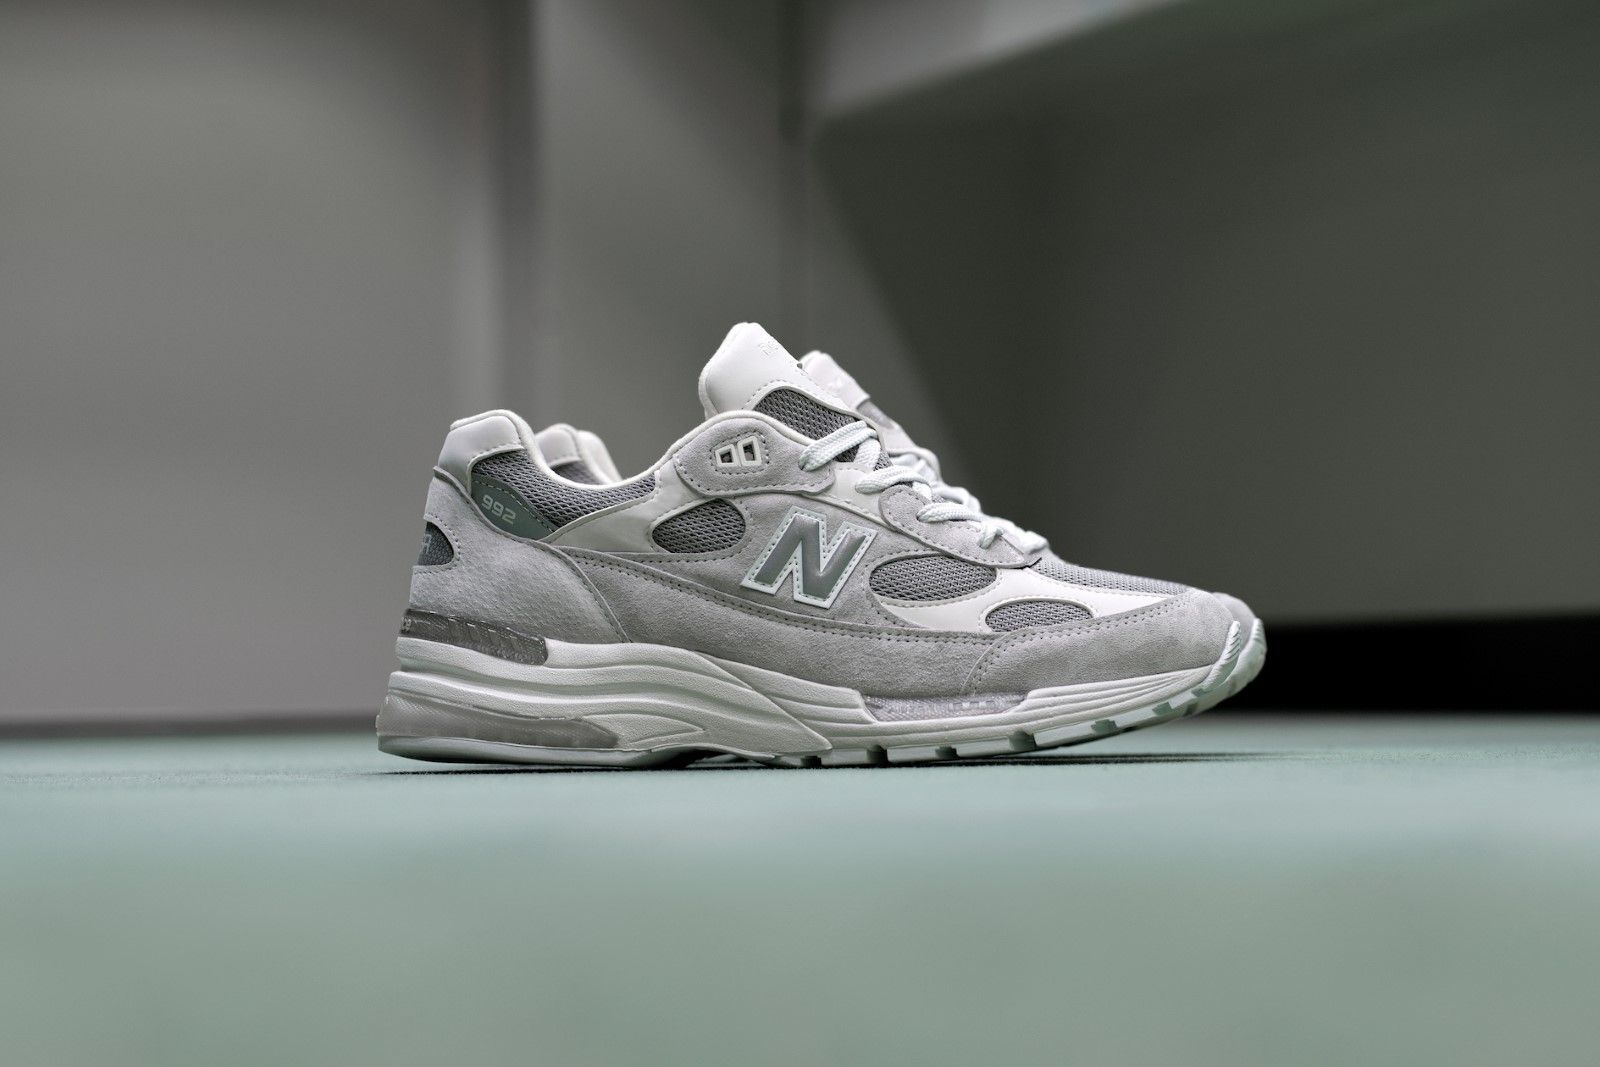 5月16日 発売予定 NEW BALANCE MADE IN USA M992 NC (M992NC)